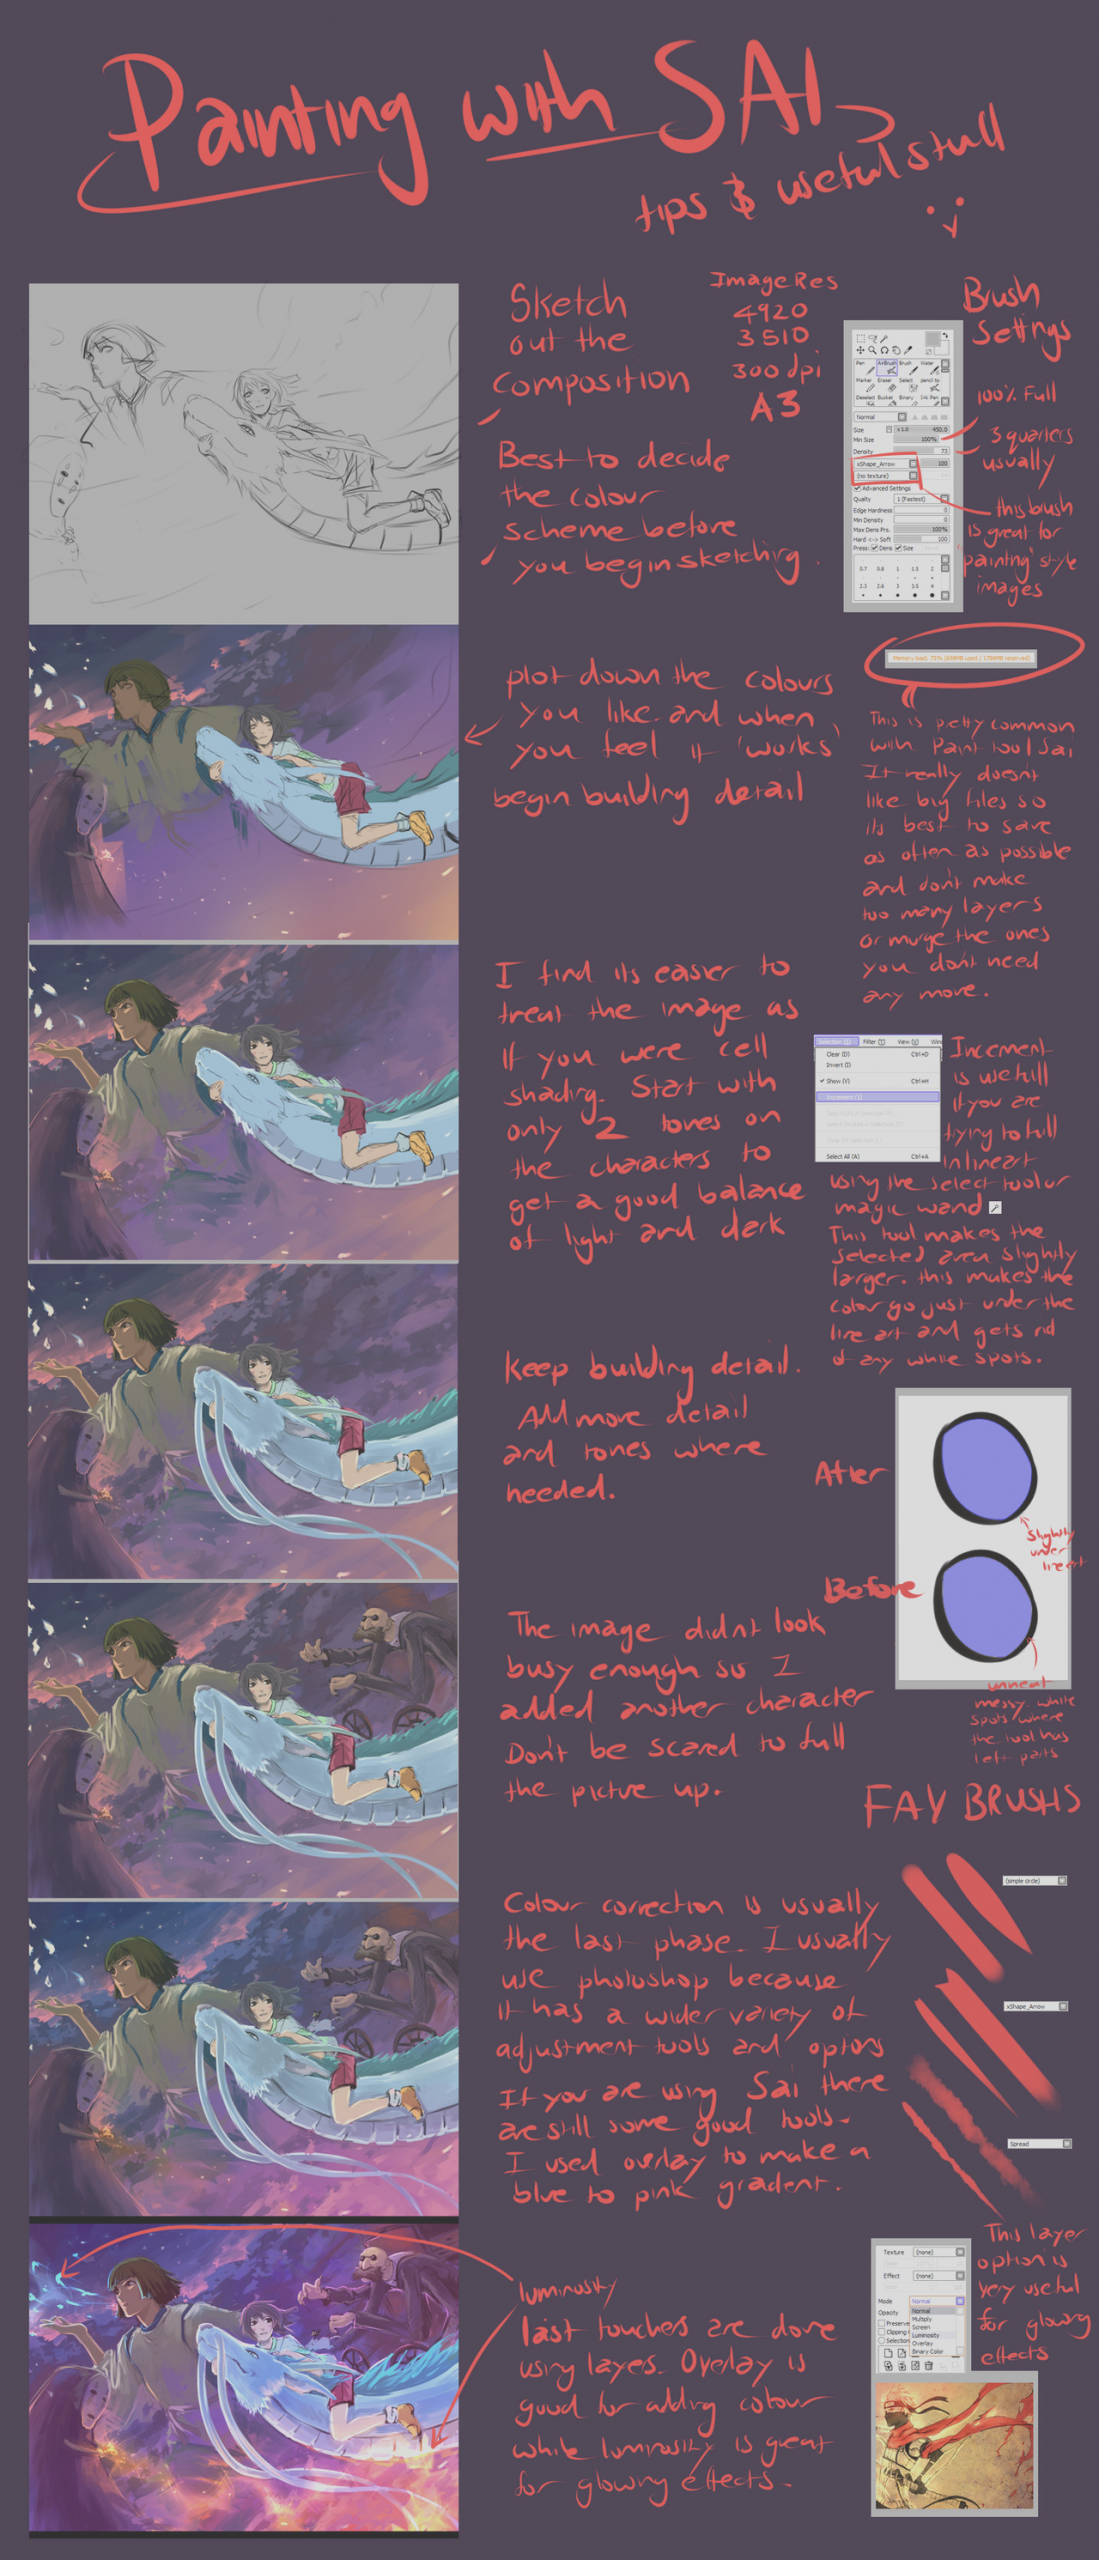 Painting and Paint Tool Sai tips